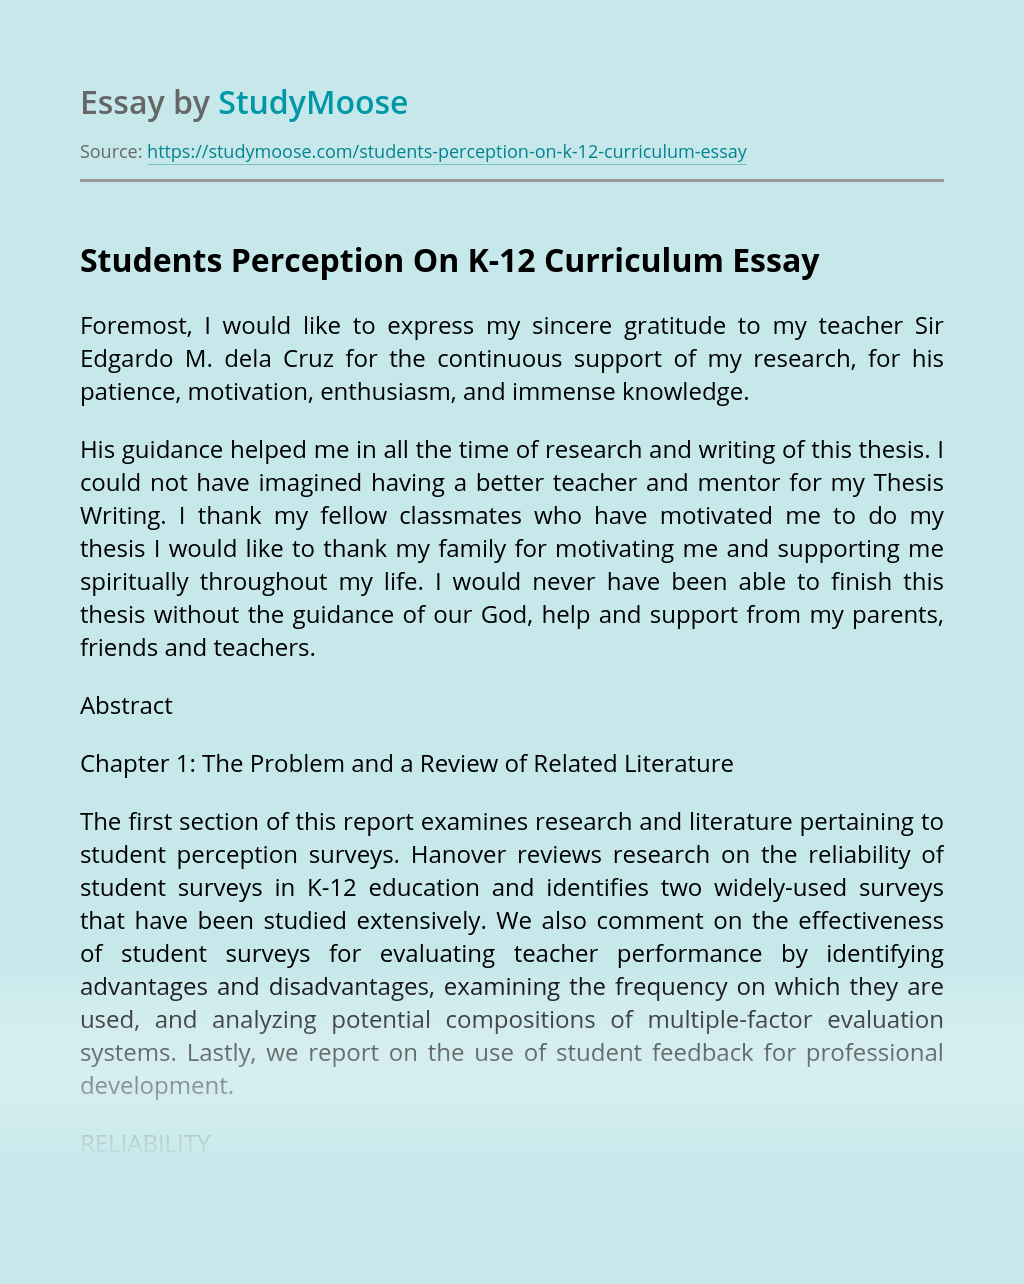 Students Perception On K-12 Curriculum